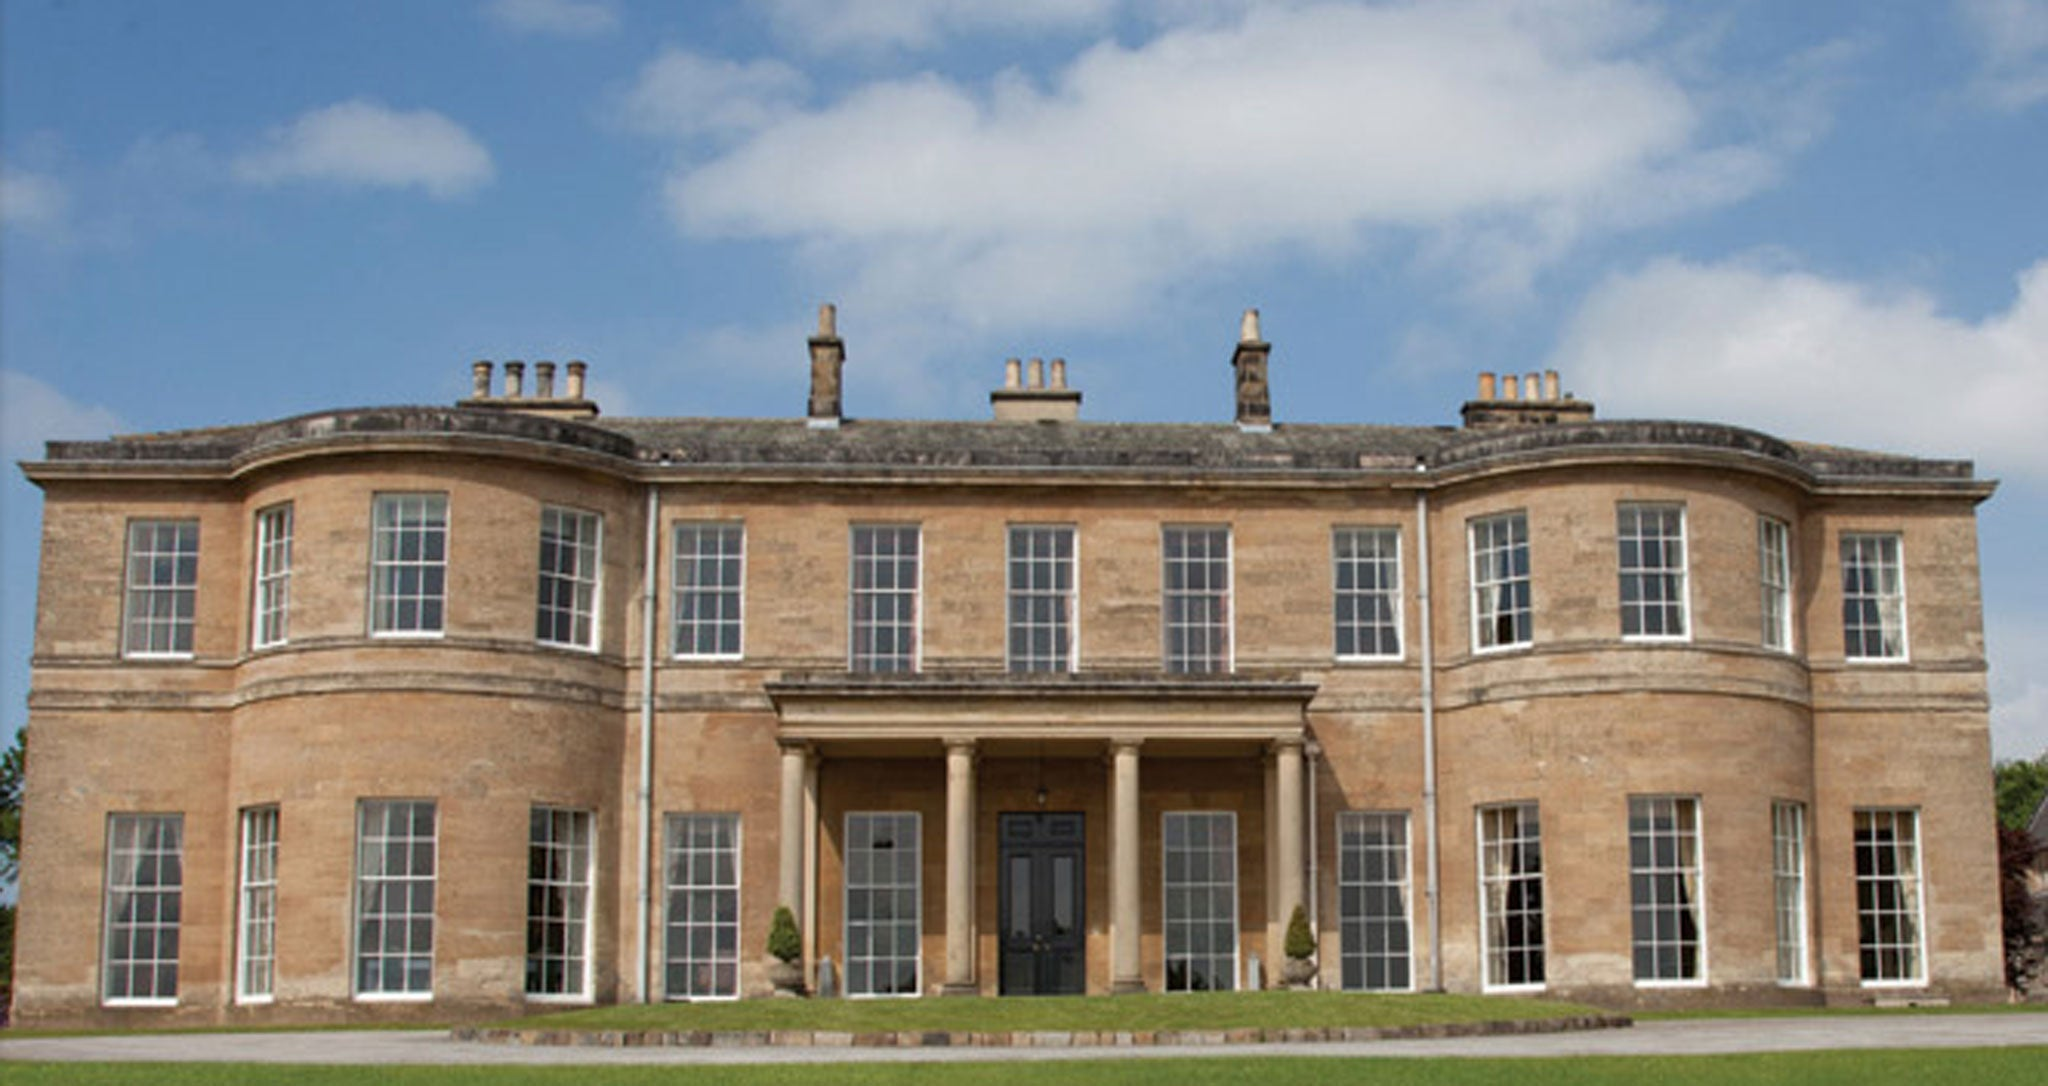 Yorkshire Golf And Spa Resort Rudding Park Trumps 5 Star Palaces As It Is Voted Fourth Best Hotel In The World The Independent The Independent